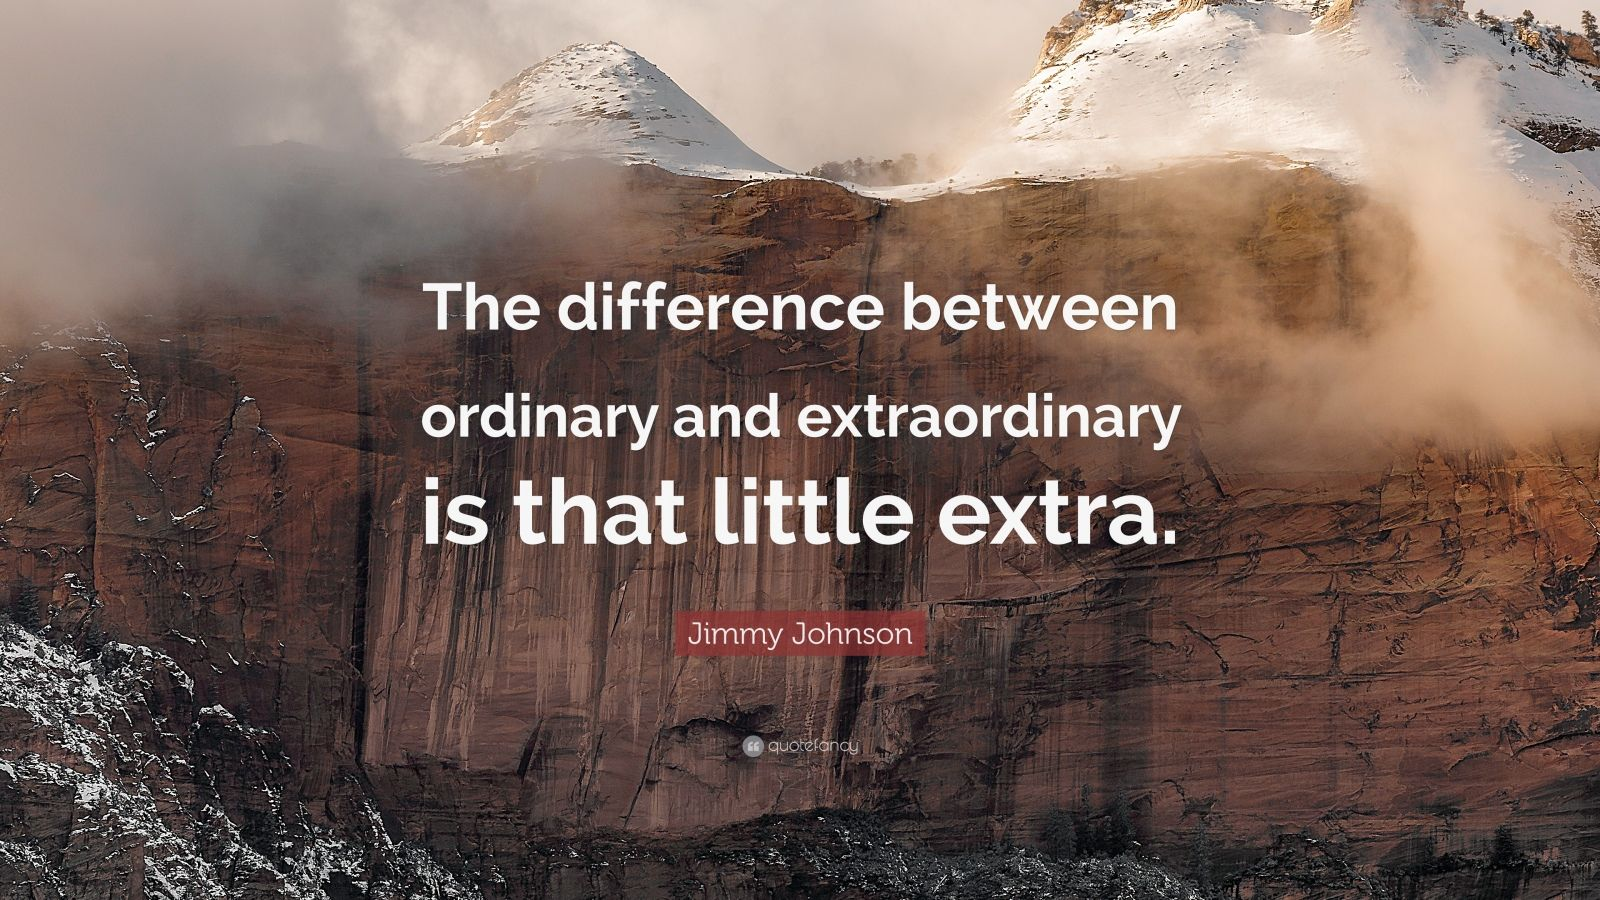 Extraordinary Wallpapers With Quotes Jimmy Johnson Quote The Difference Between Ordinary And